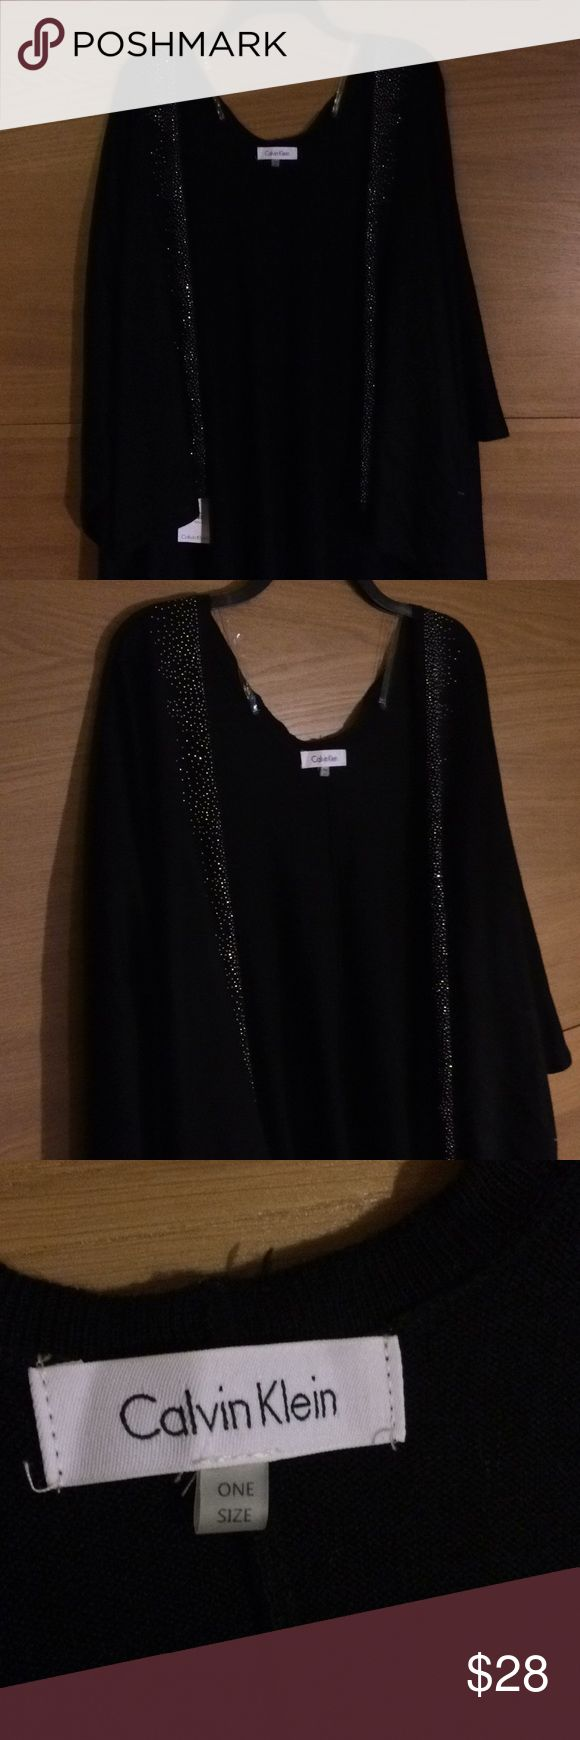 """Calvin Klein Black Shall or poncho NEW! Women's Calvin Klein Studded Poncho - Black - Ponchos Delicate metallic studwork lends a soft, twinkling quality to the borders of a cozy knit poncho from Calvin Klein. Measures approximately 48"""" x 58"""". Metallic stud accents along front opening. Fabric Content: Acrylic. Disclaimer: Photo may have been enlarged and or enhanced. Calvin Klein Other"""